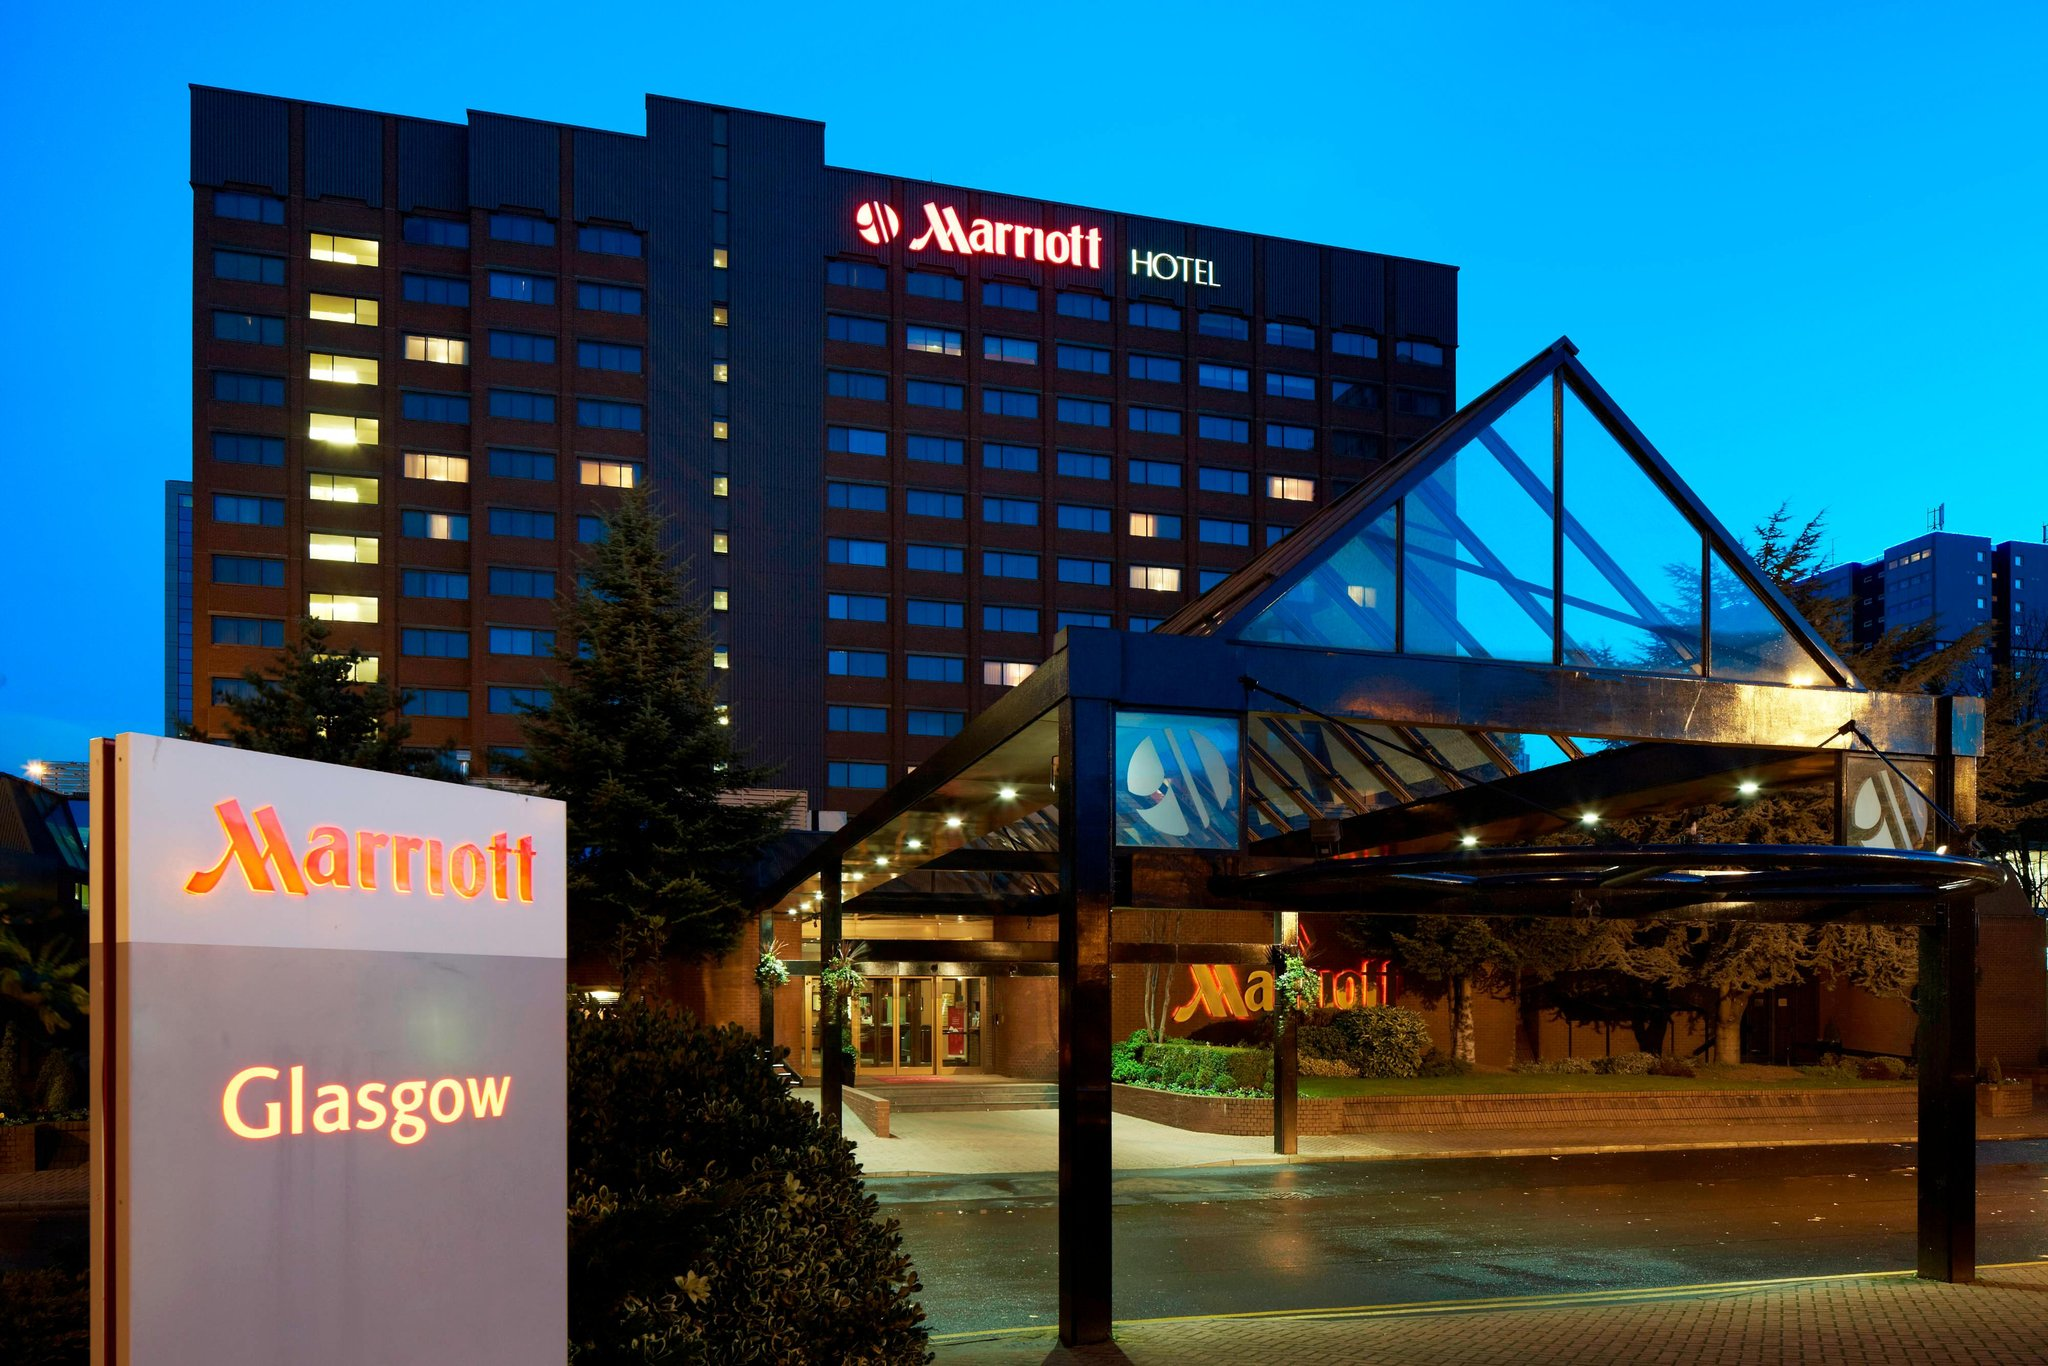 Marriott Glasgow